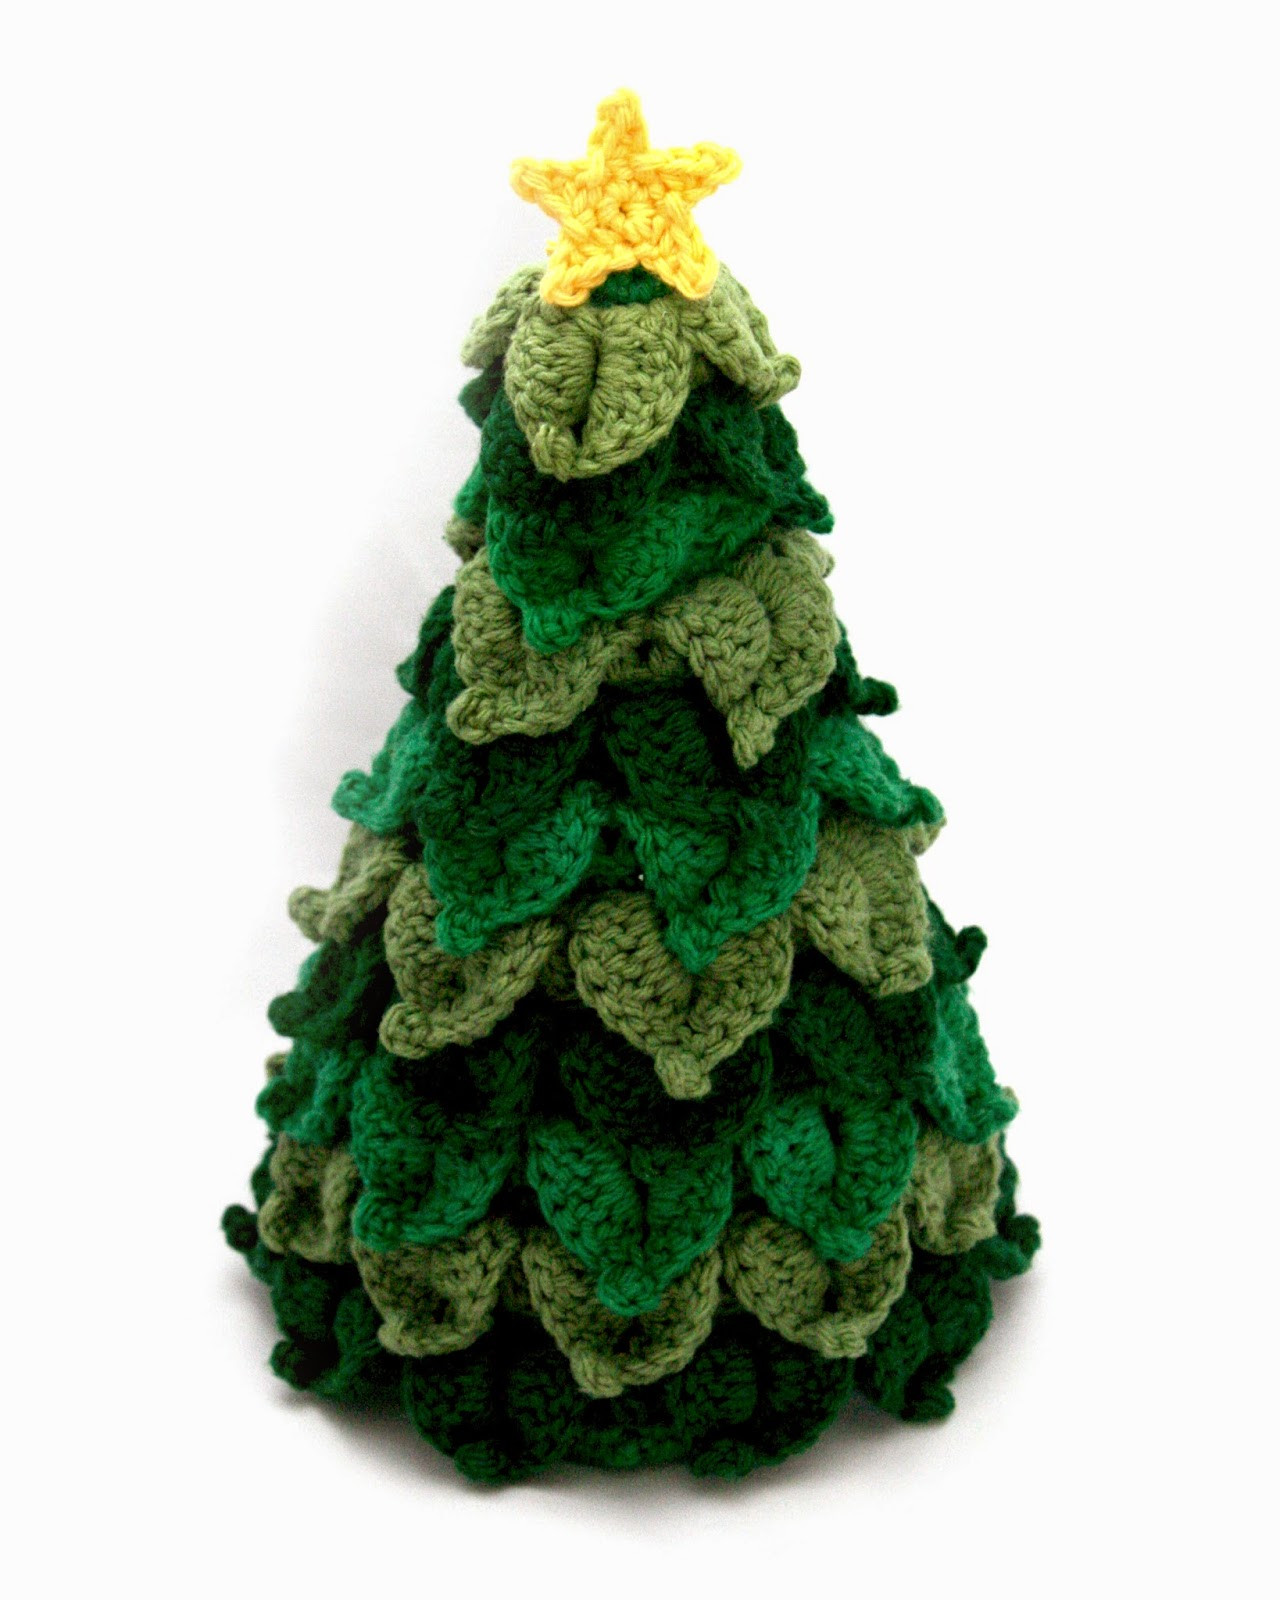 Little Abbee O Crochet Christmas Tree Crochet TUTORIAL